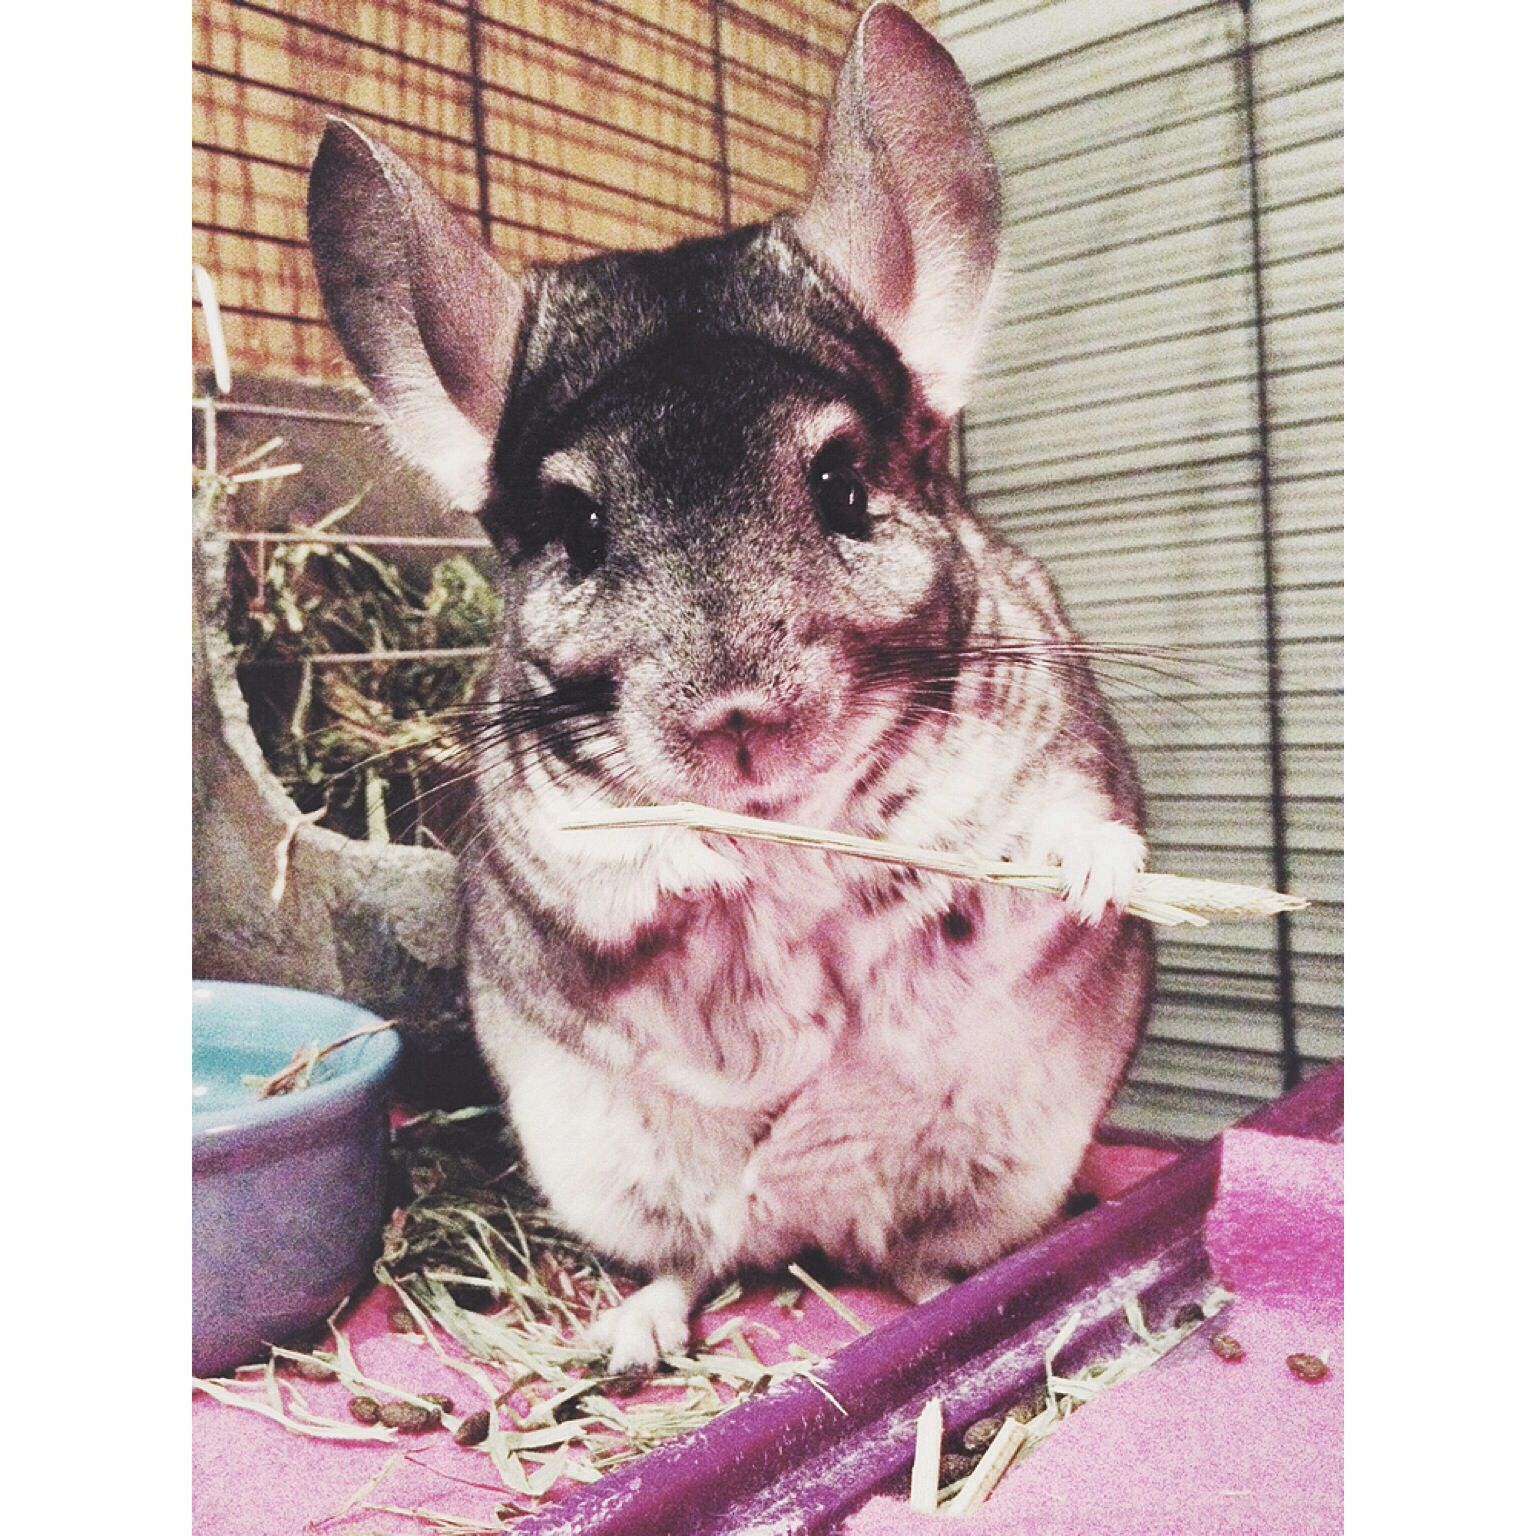 My chinchilla eating kibbles (With images) Chinchilla